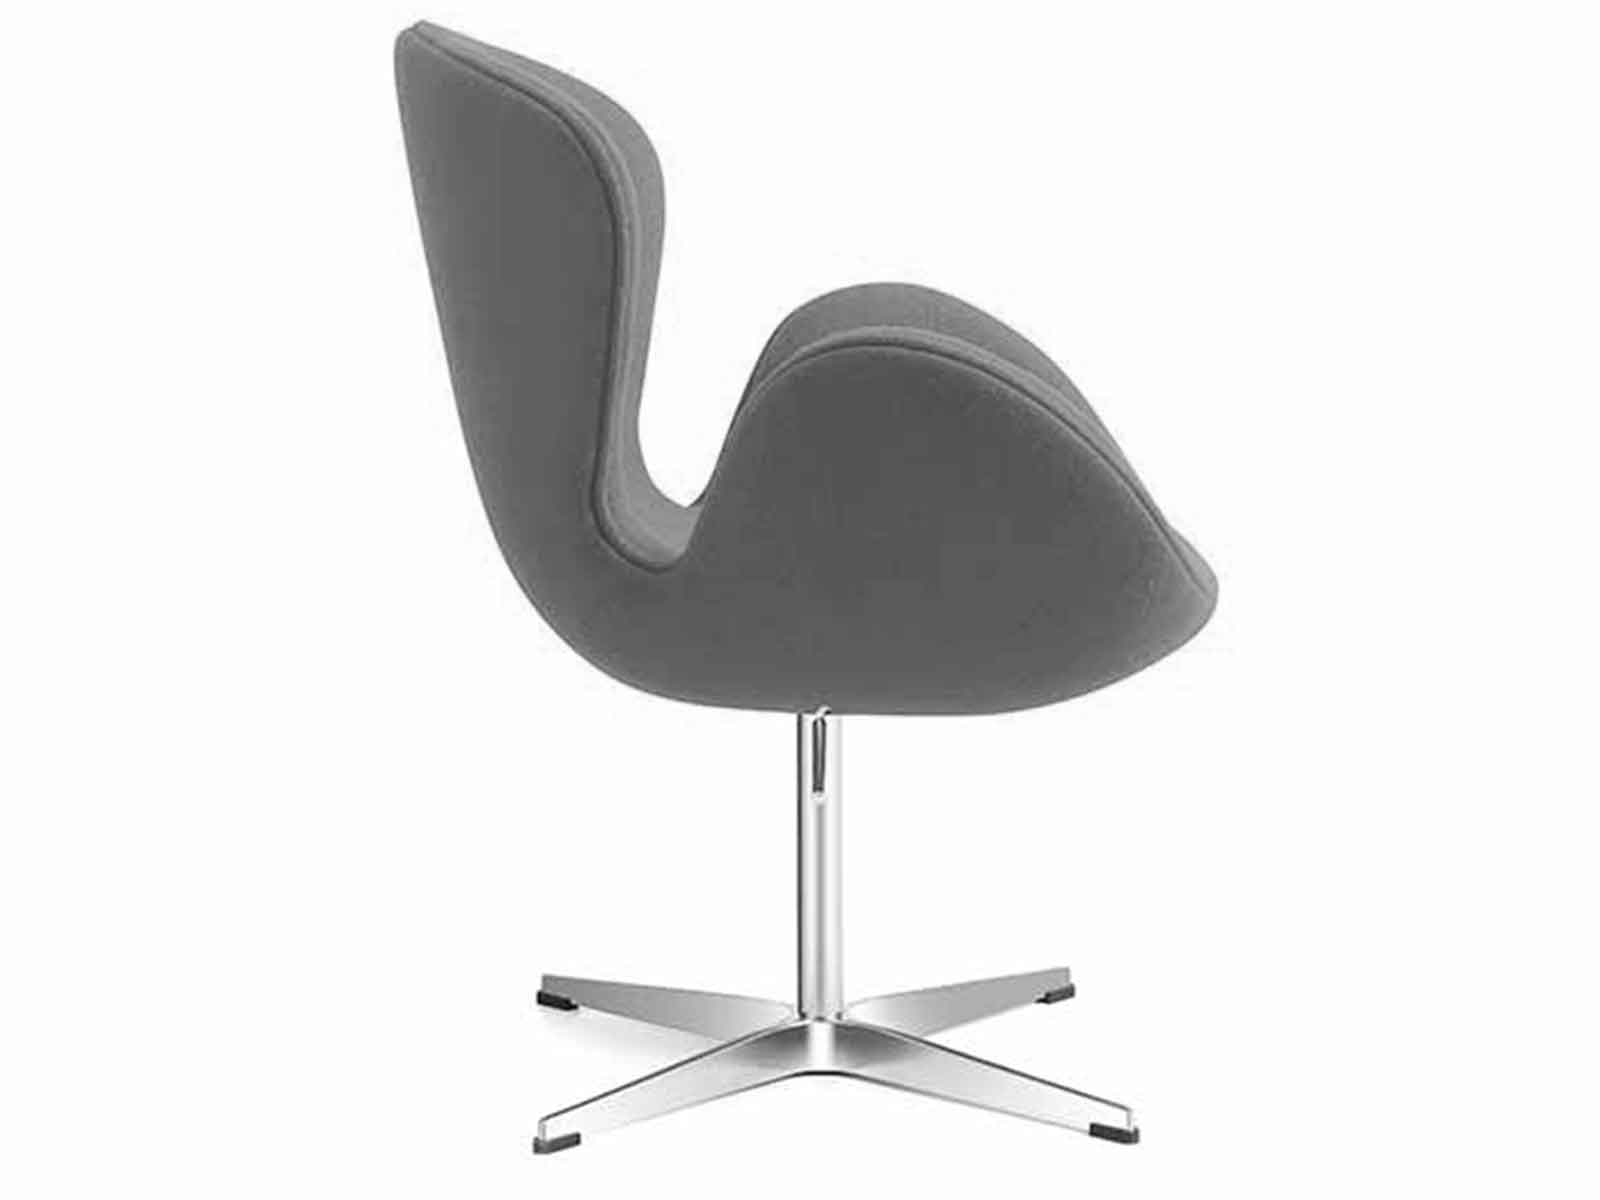 Silla sidney gris casam a design compra sillas for Sillas color gris